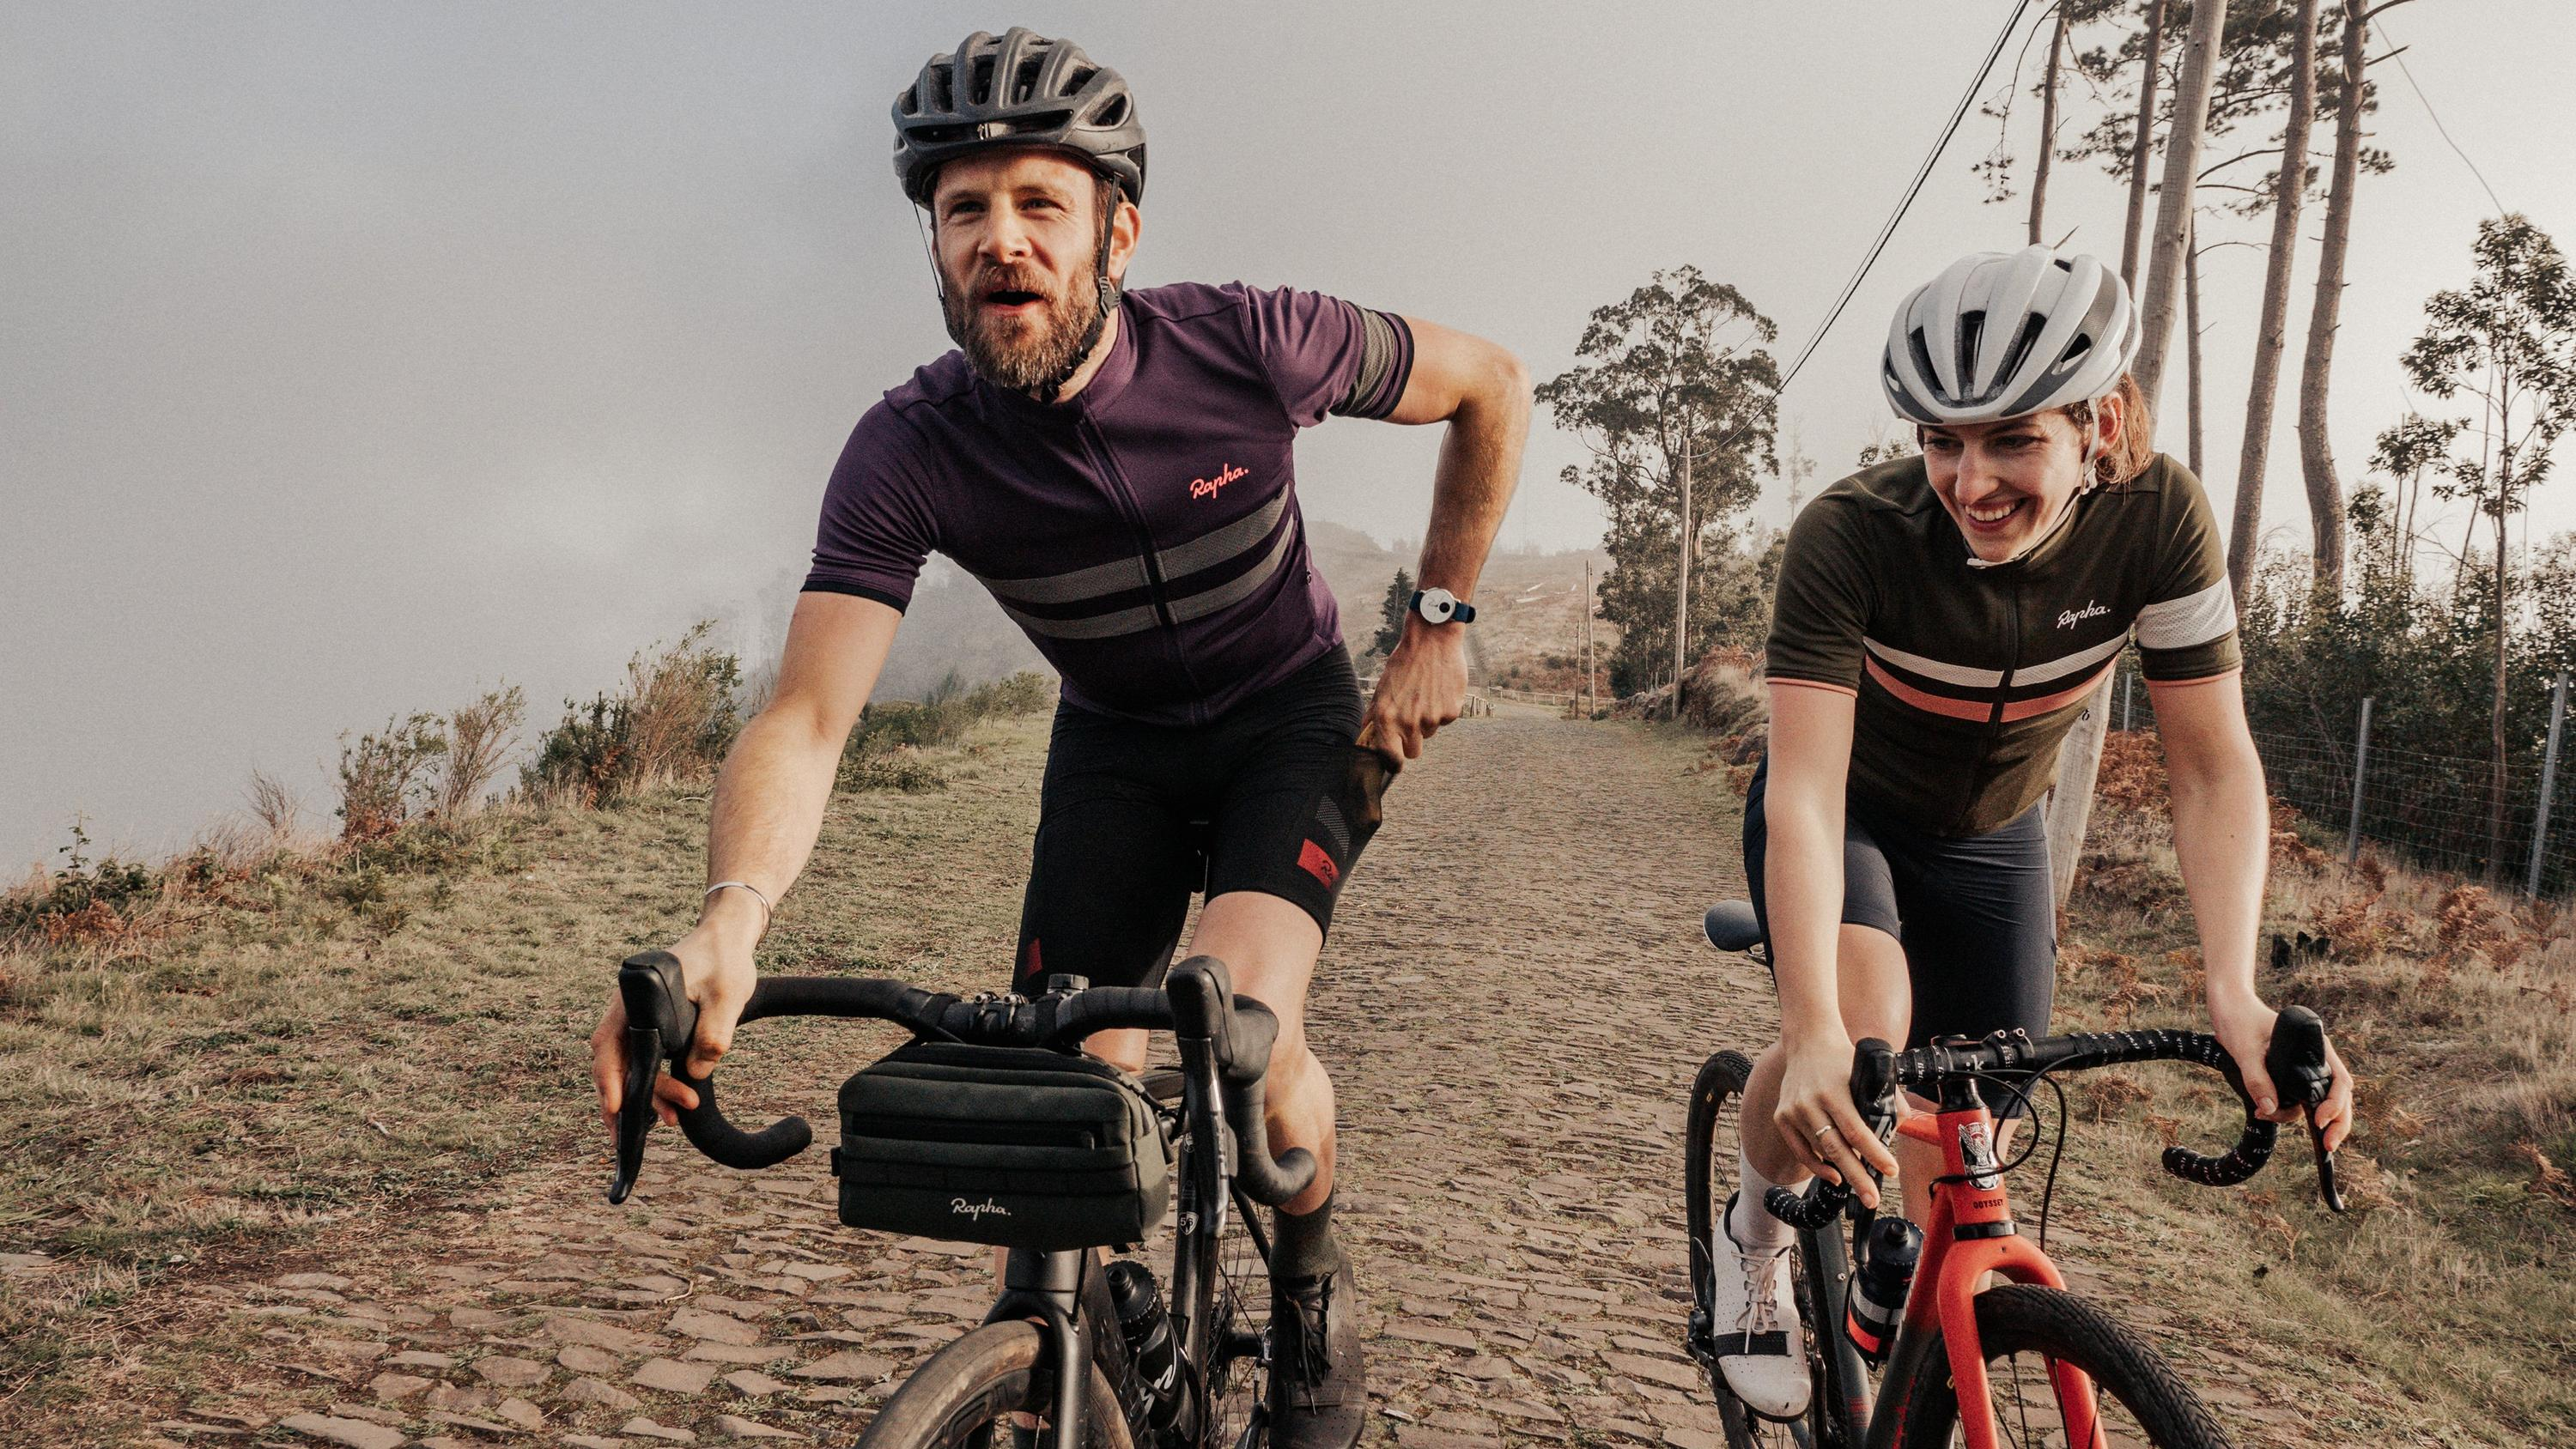 Cargo Bib Shorts With Pockets Rapha Explore Cycle Clothing For